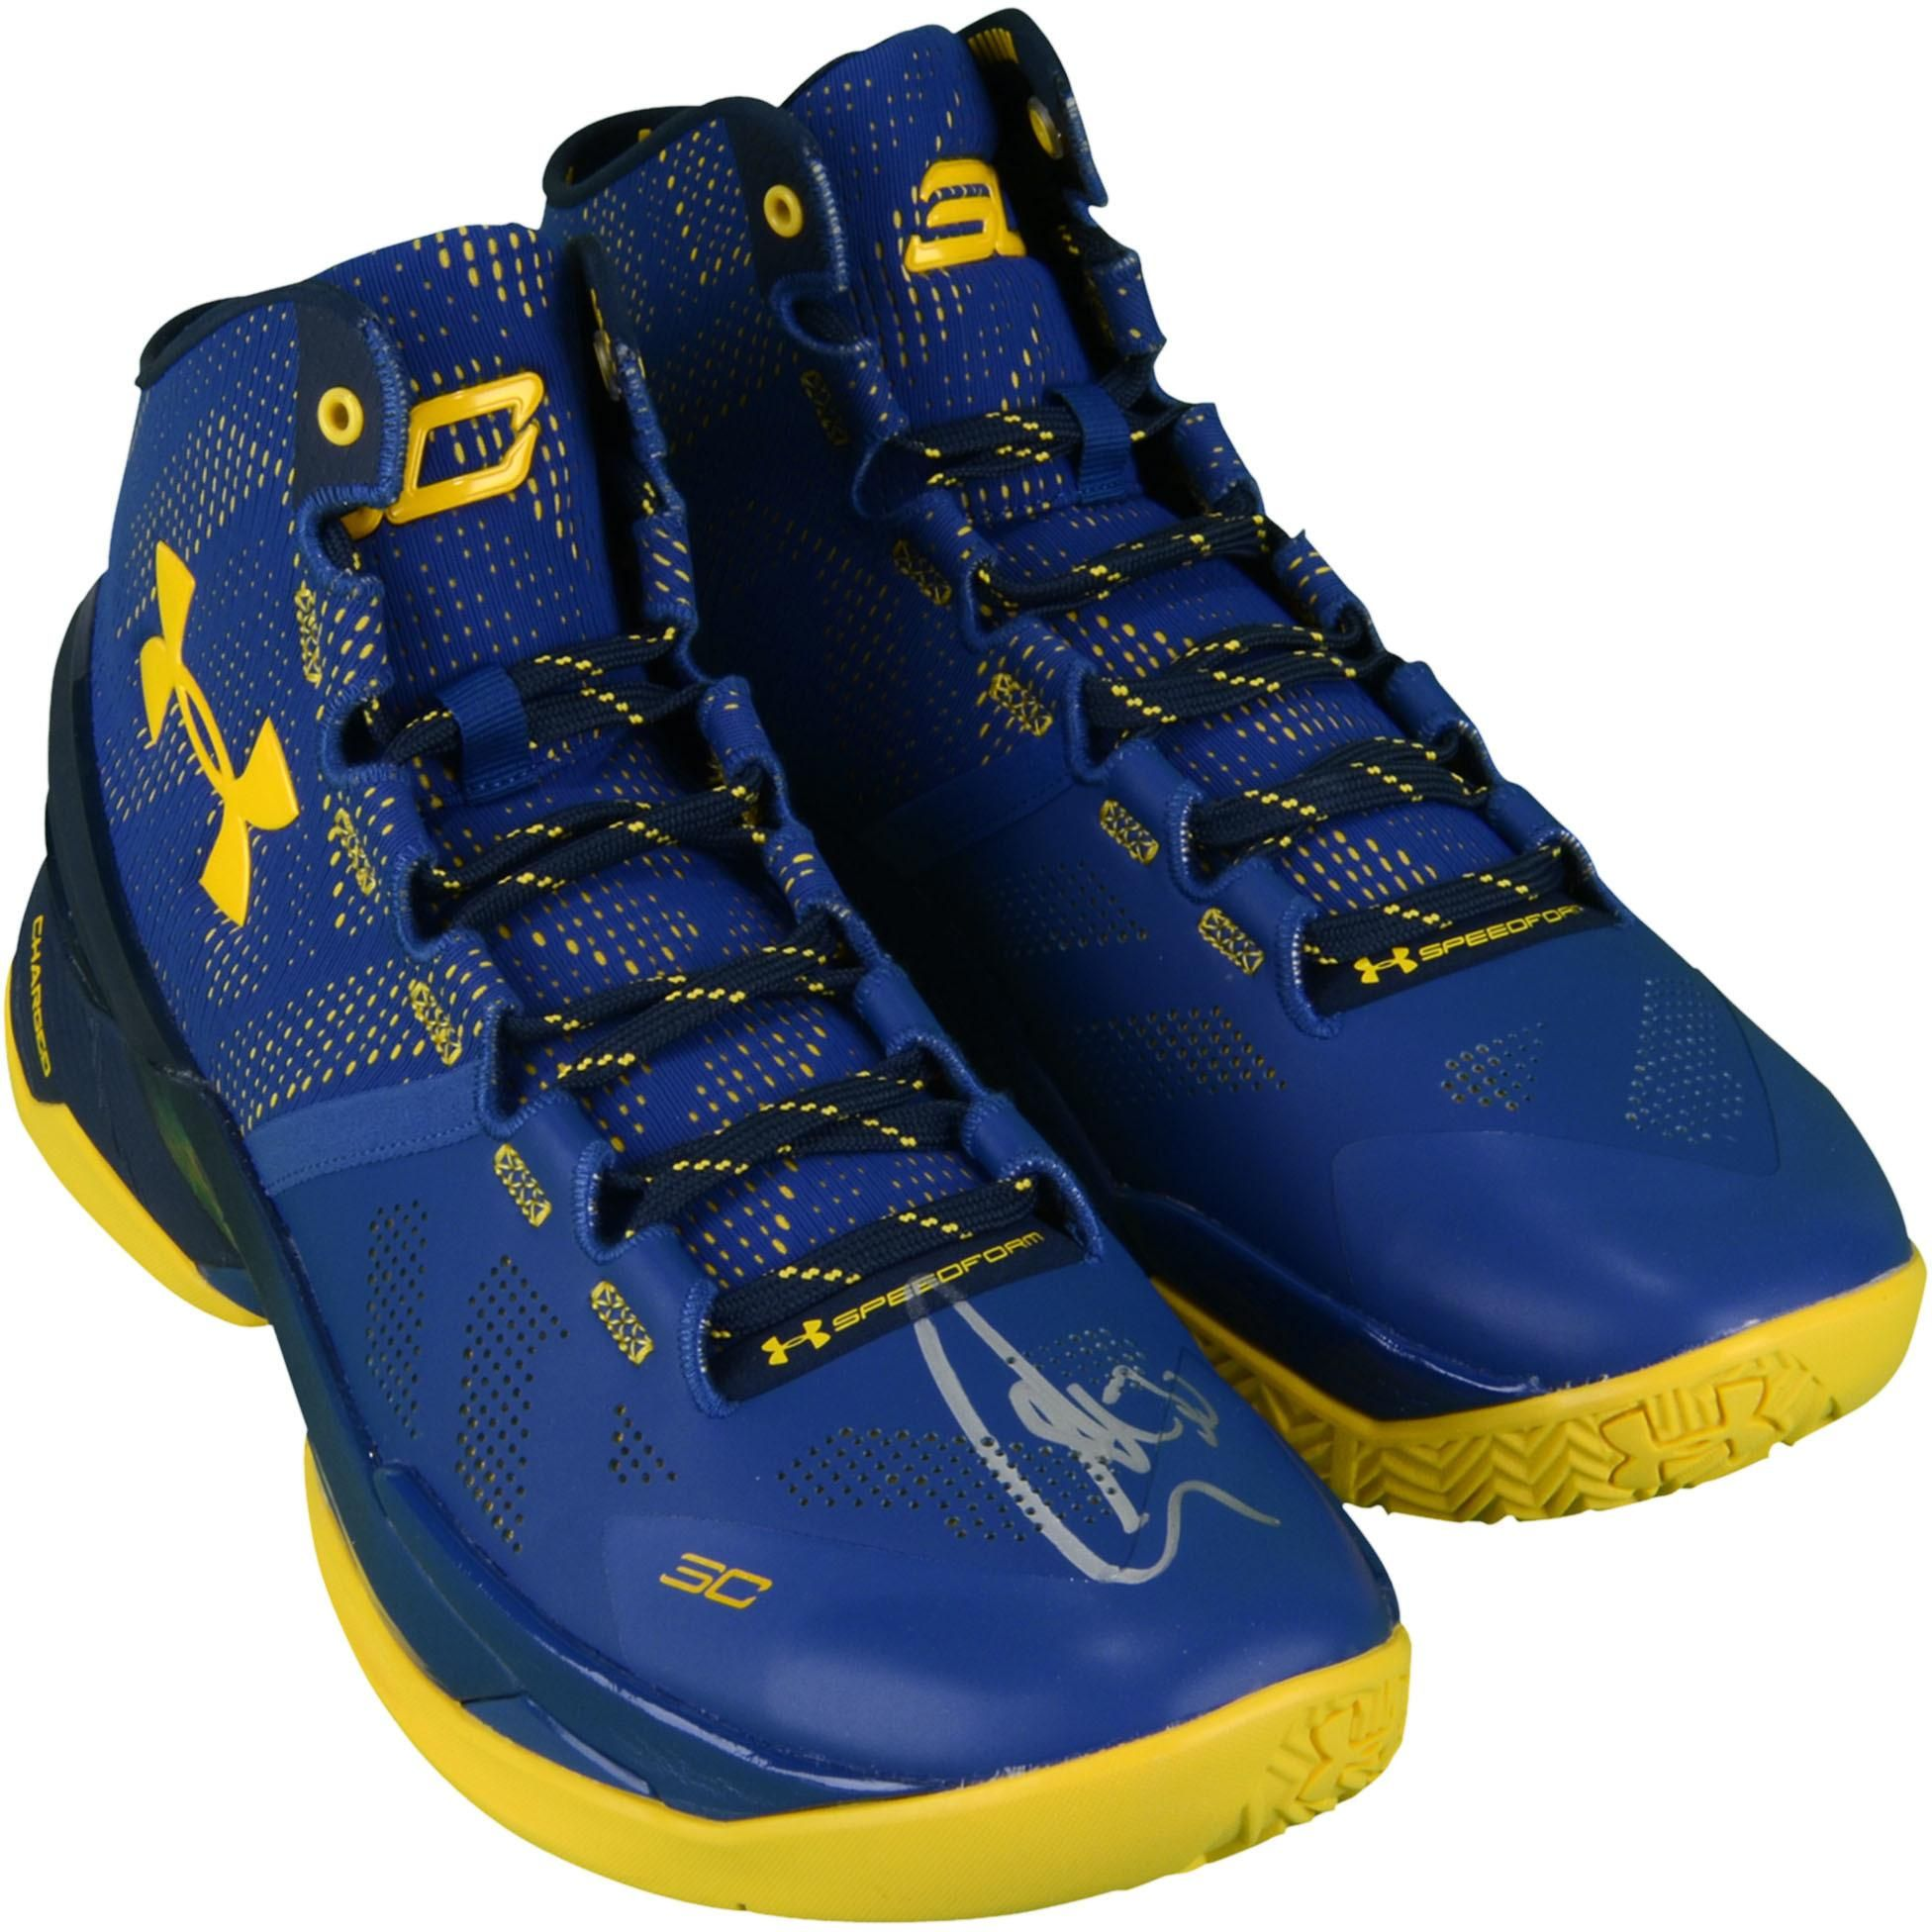 Stephen Curry Golden State Warriors Autographed Curry 2 Cobalt Blue